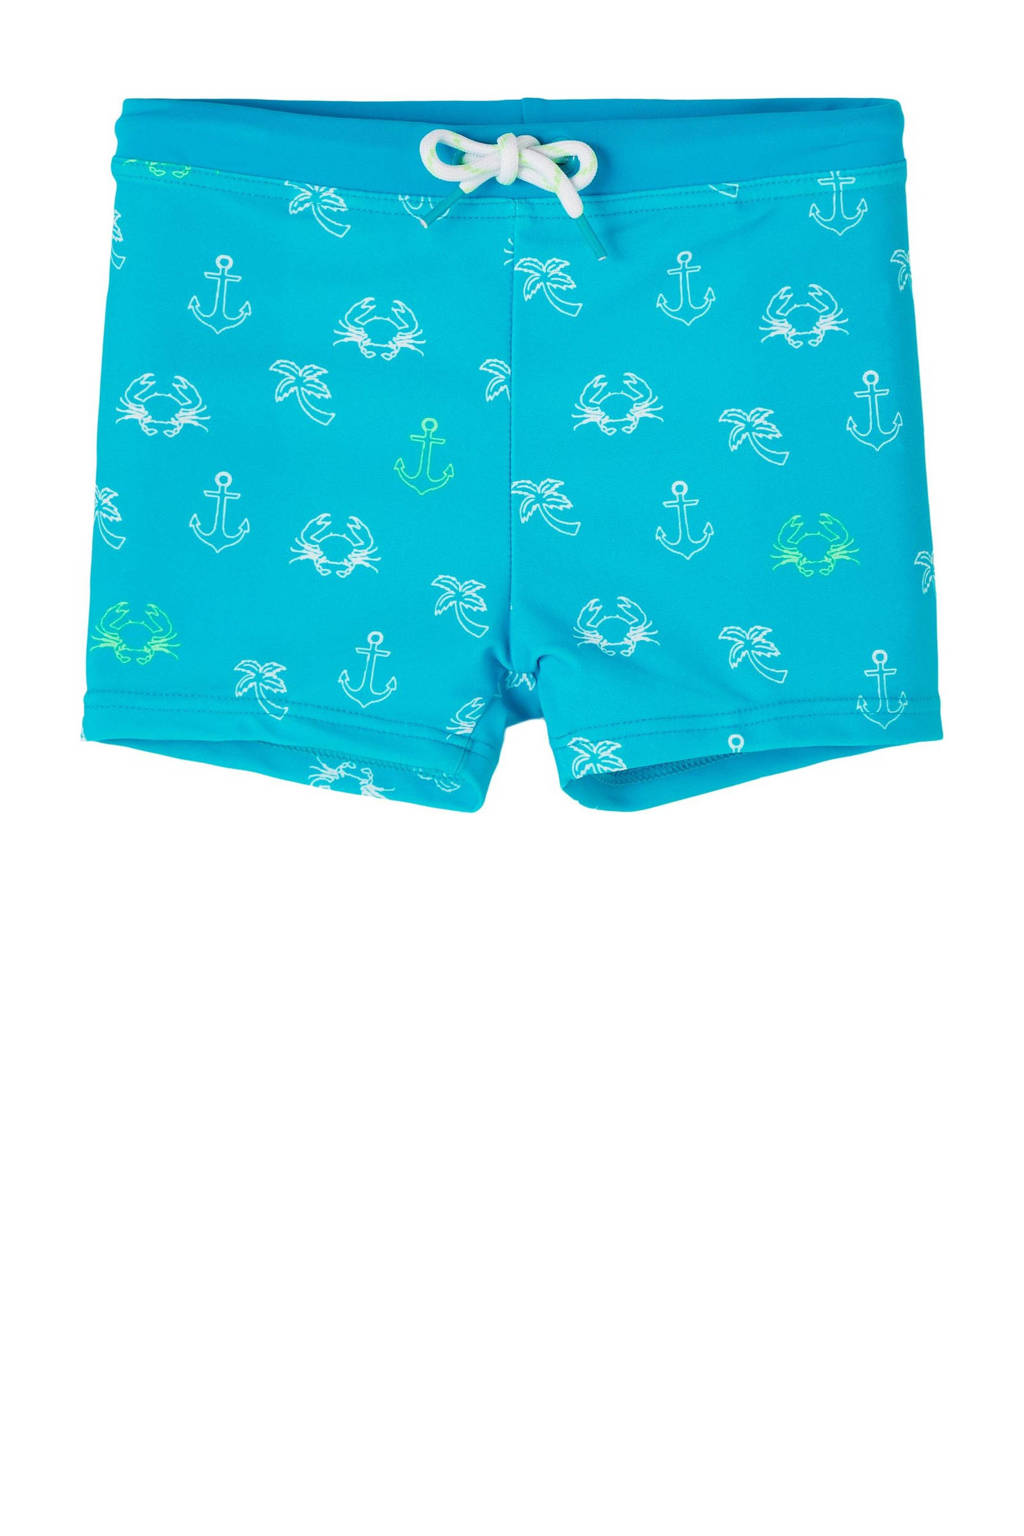 NAME IT MINI zwemboxer Zean met all over print turquoise/wit, Turquoise